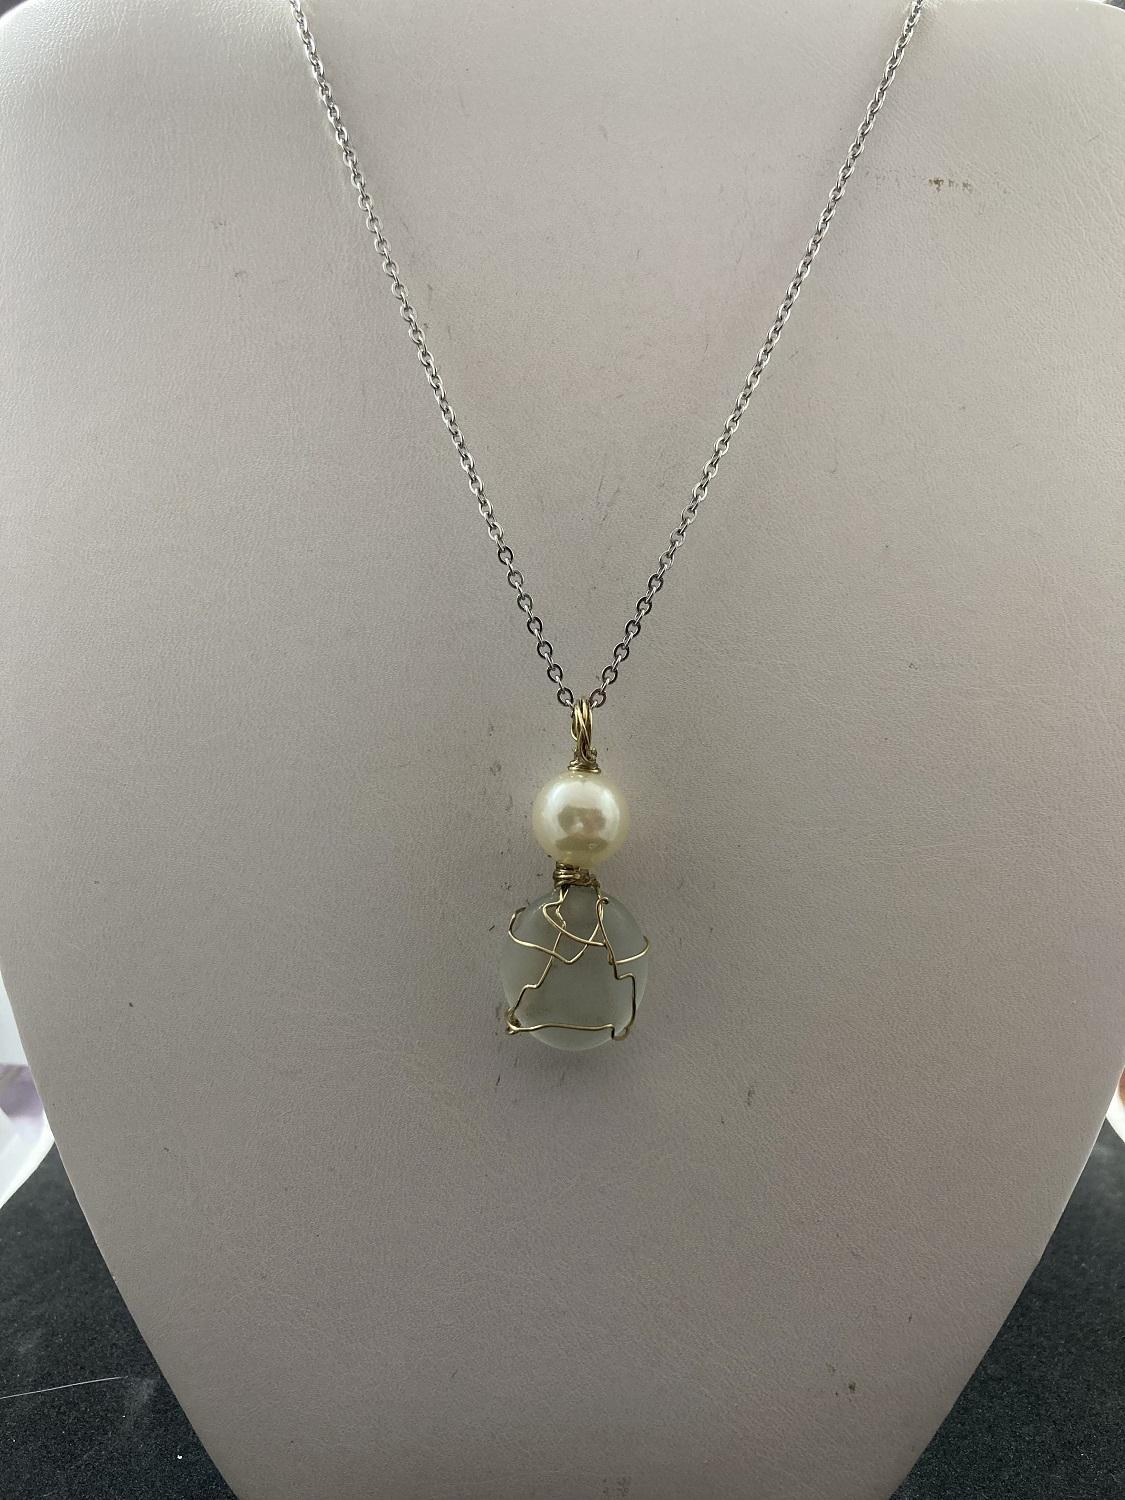 Moon glass stainless steel necklace with pearl bead